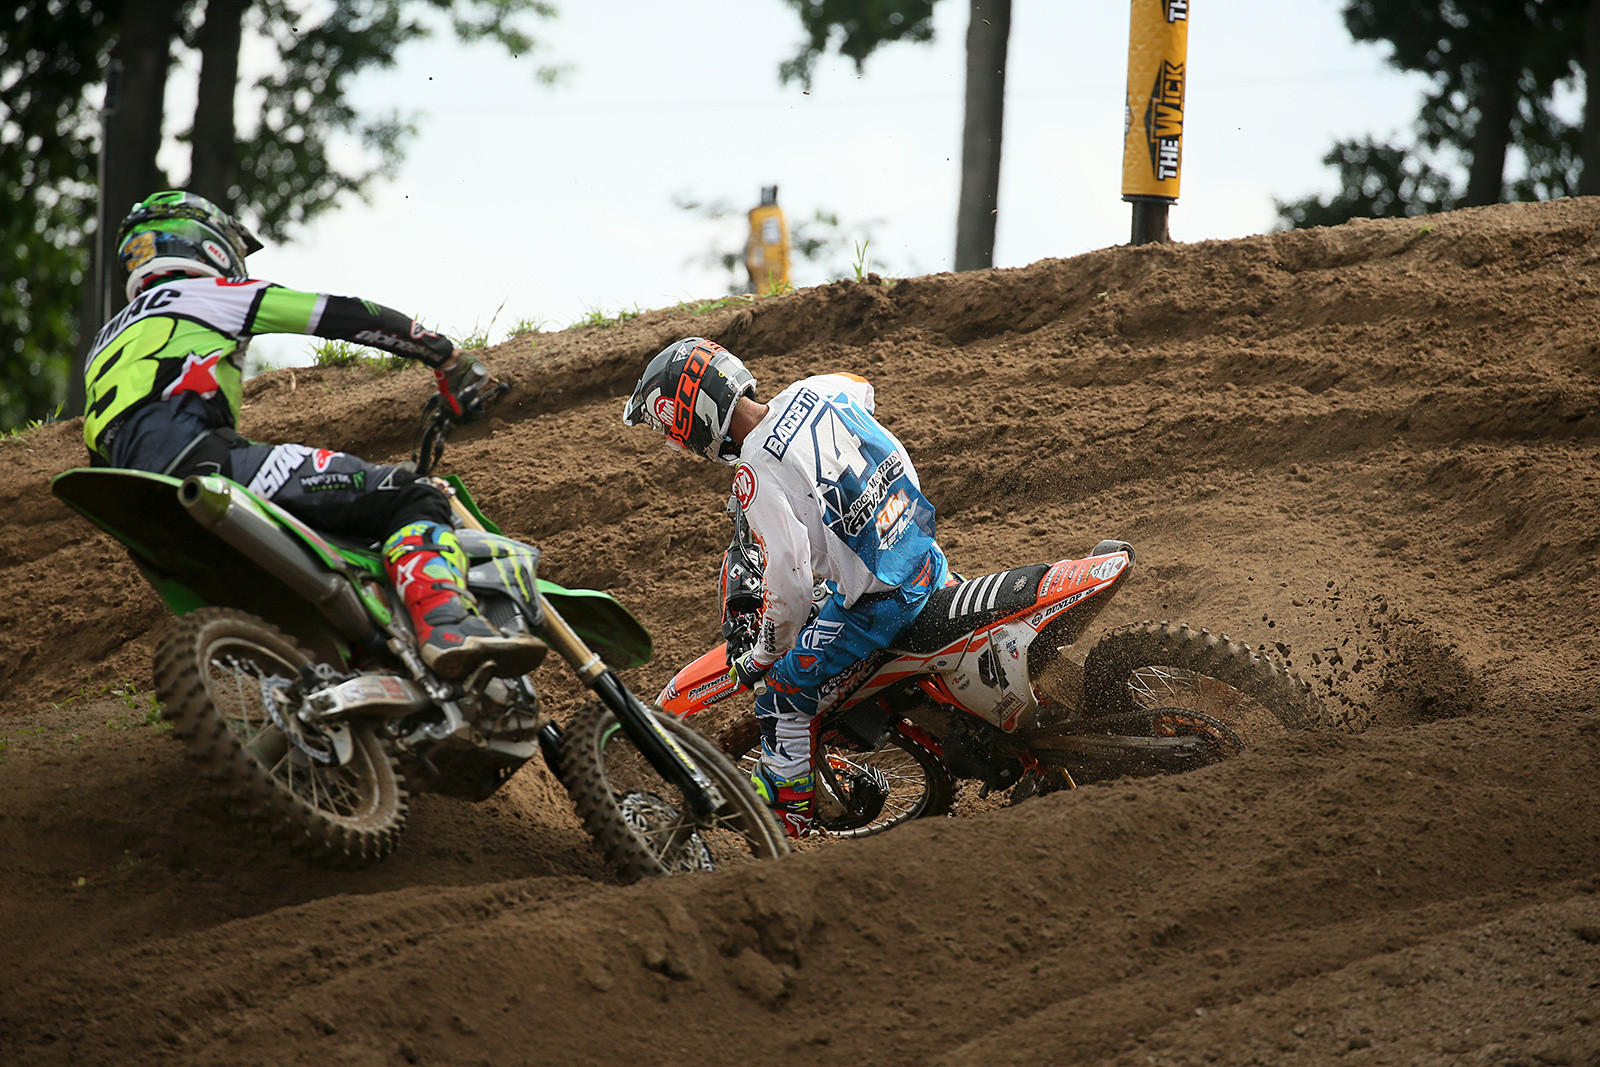 Blake Baggett (right), with Eli Tomac in hot pursuit.